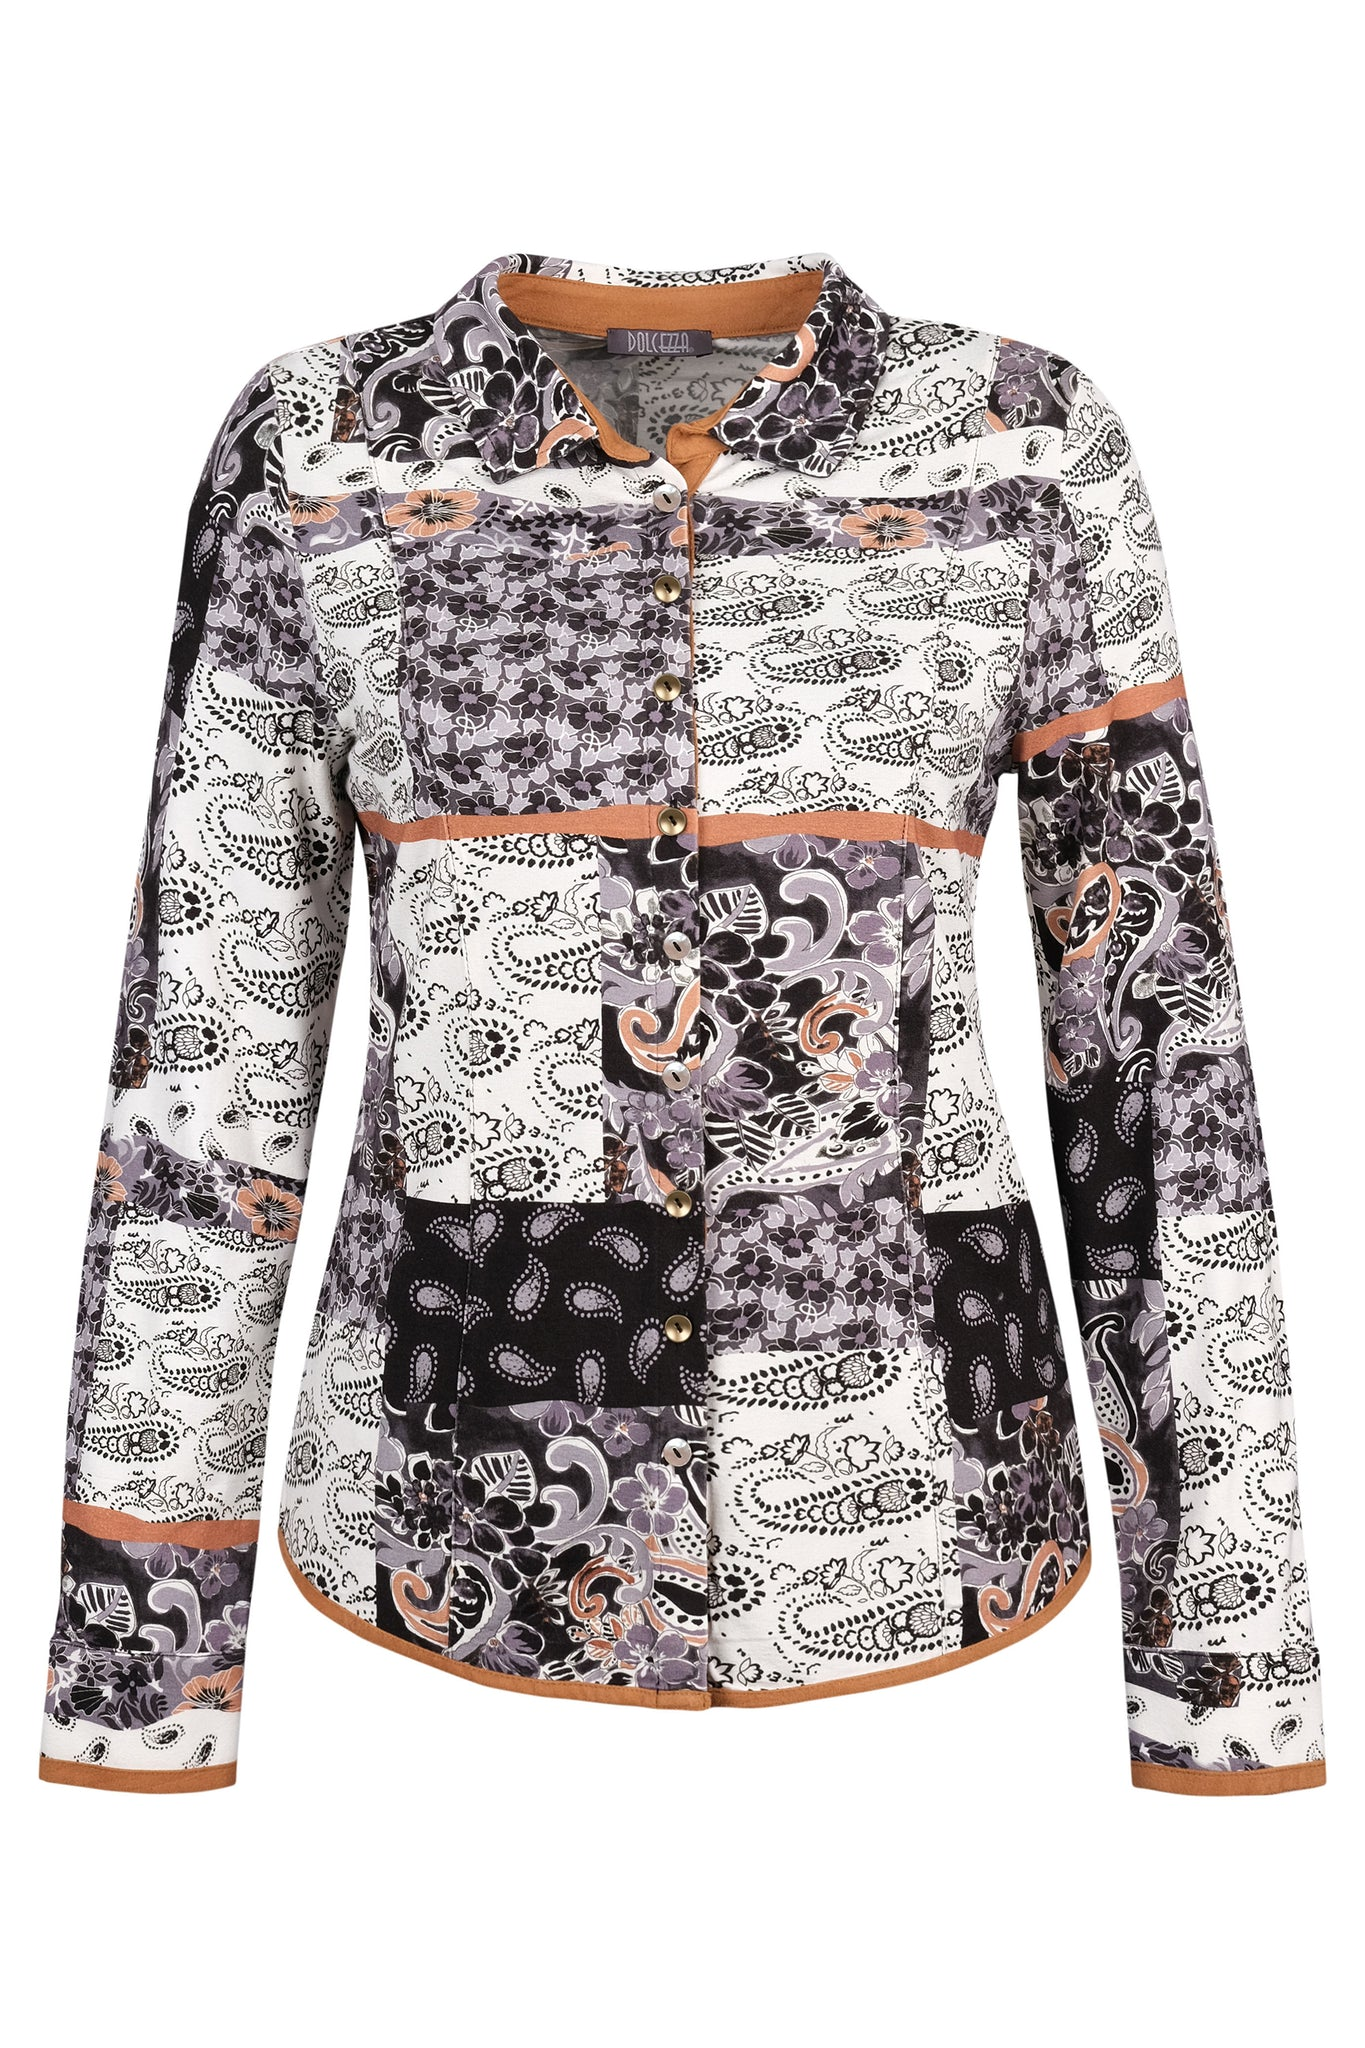 Dolcezza } Graphic Patchwork Blouse **50% OFF original price applied at checkout**